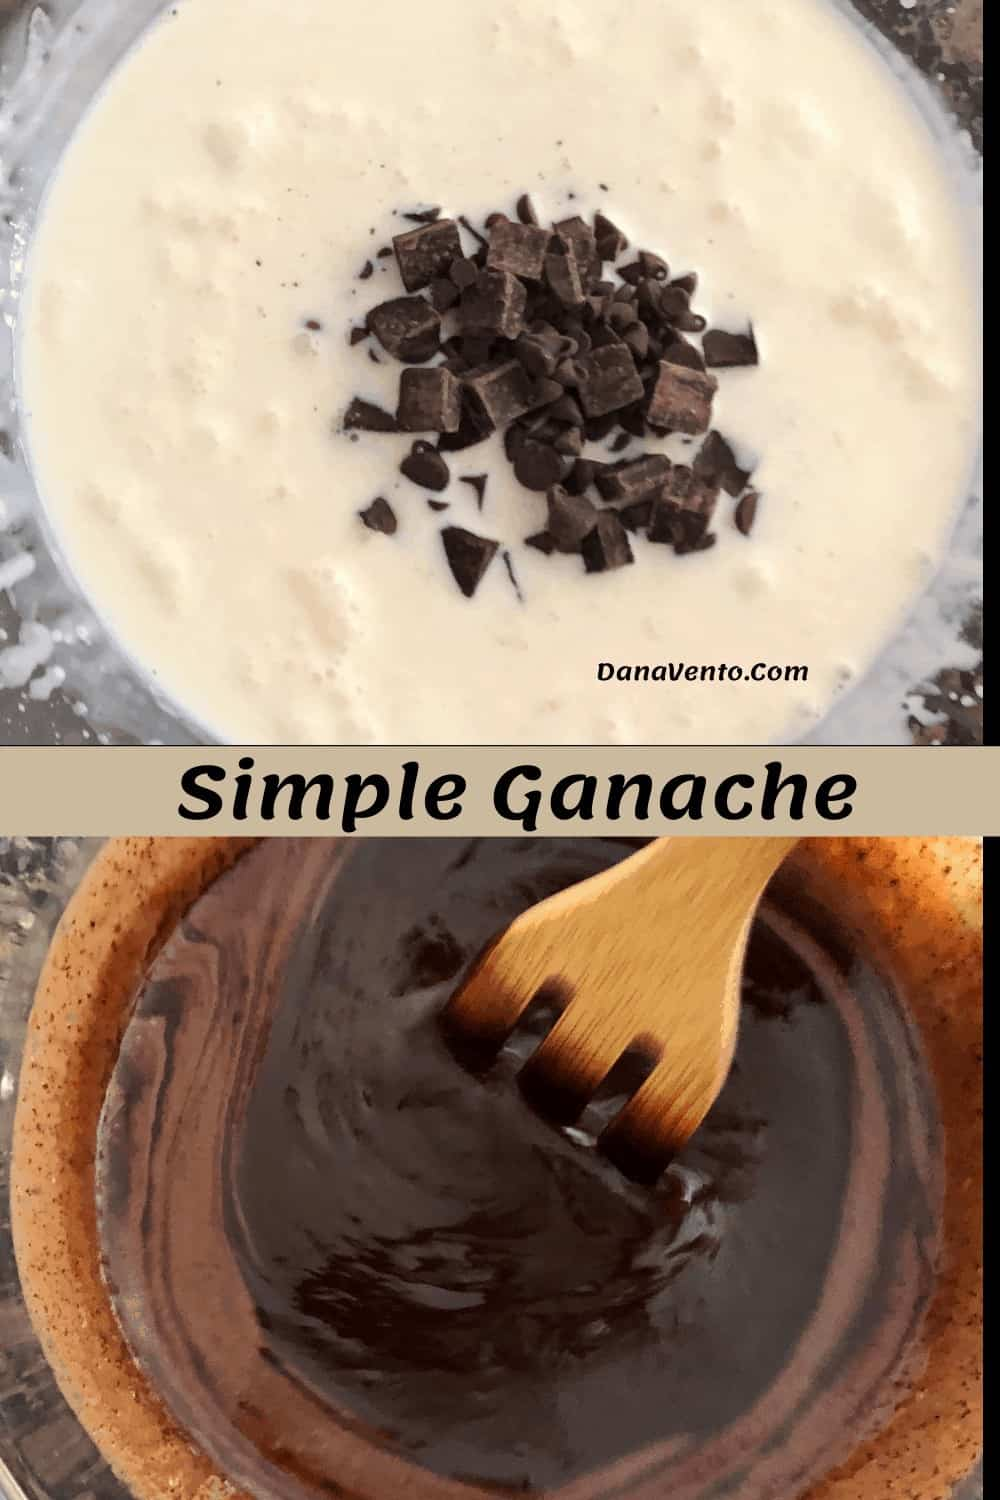 Easy Chocolate Ganache filling  being made